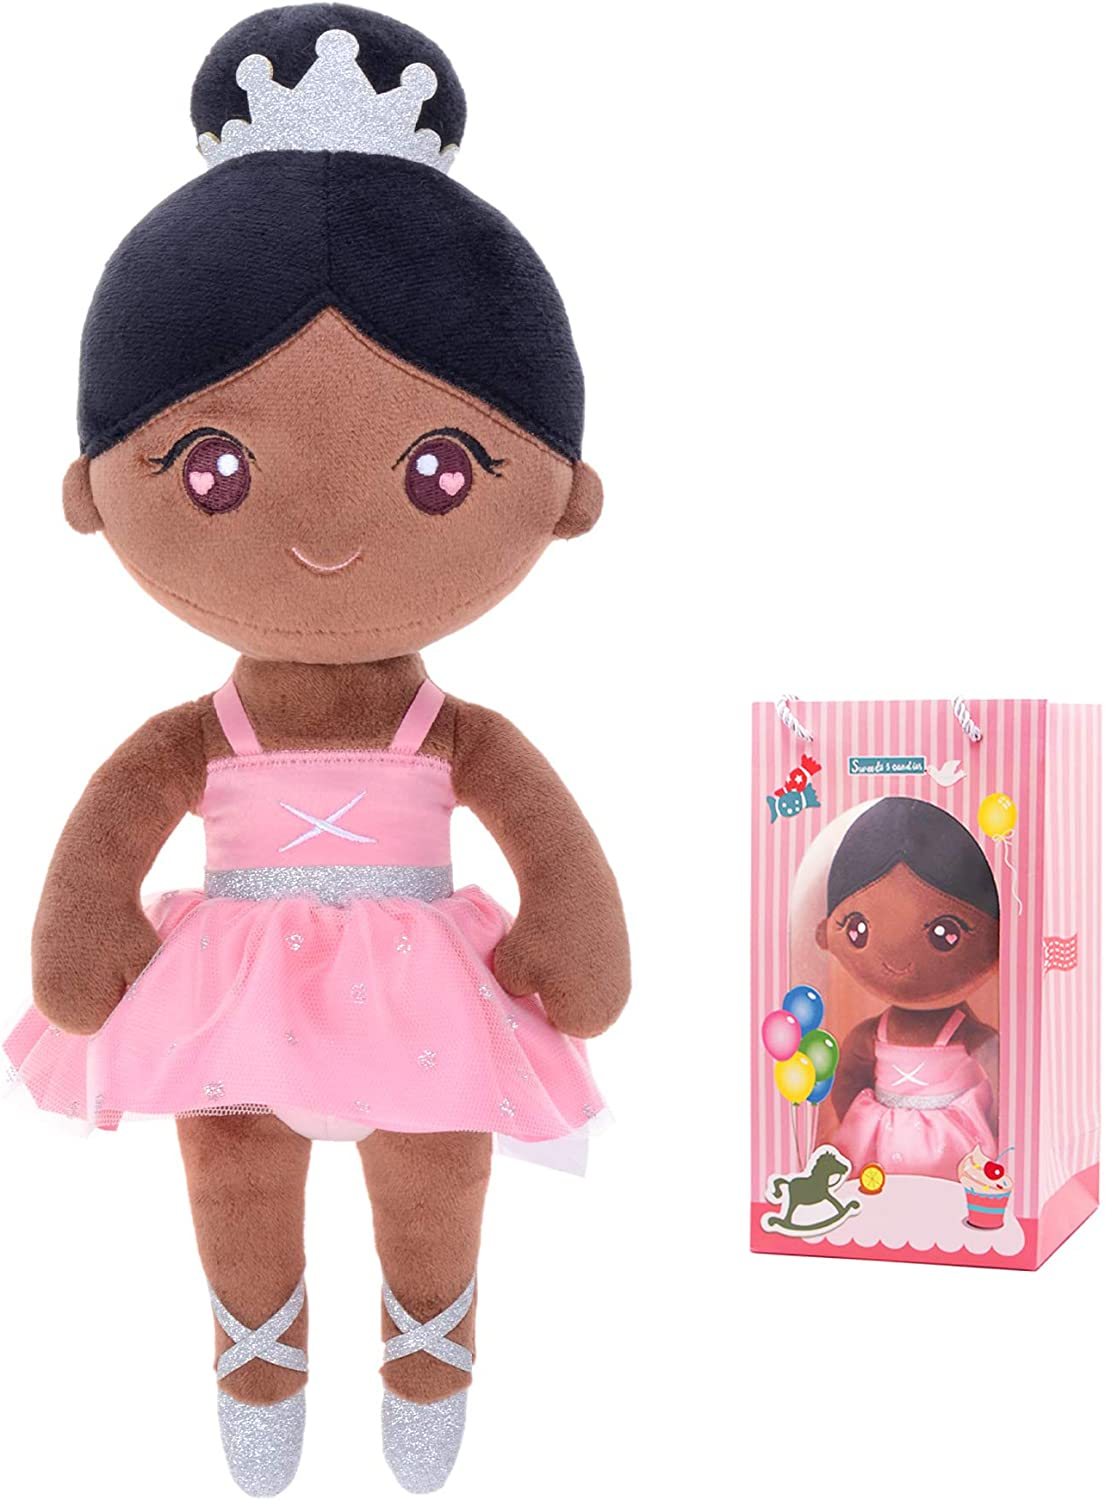 Conzy Stuffed Baby Doll Gifts for Girl Super Soft Buddy Cuddly Baby Girl Toy Gifts wtih Gift Bag 13 Inches in Standing (Ballet Girl)